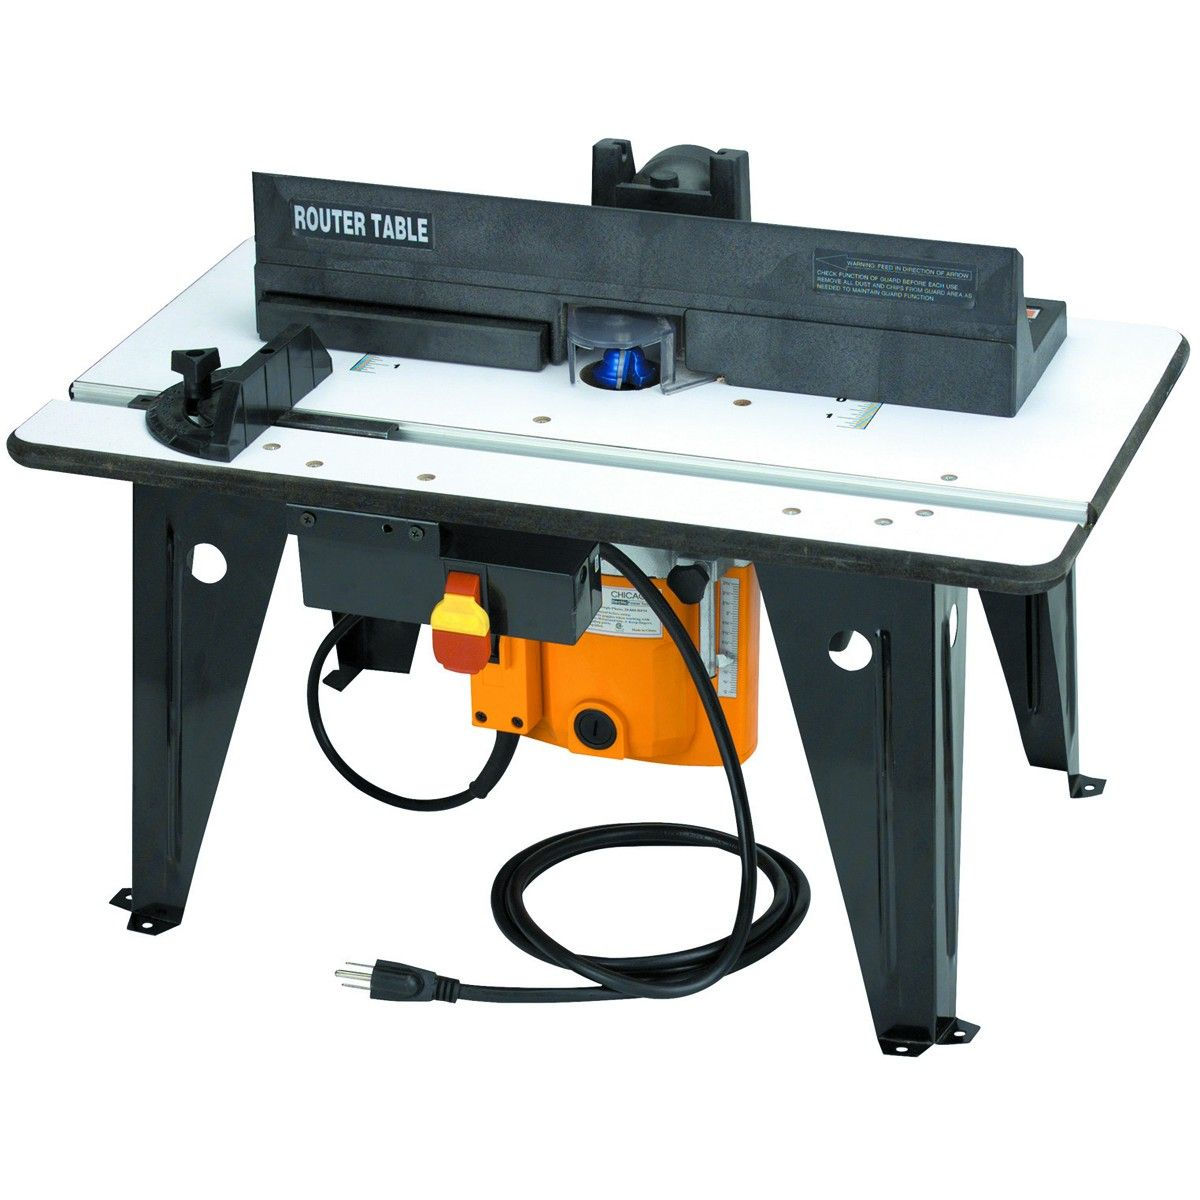 Benchtop Router Table Plans - Benchtop router table with 1 3 4 hp router